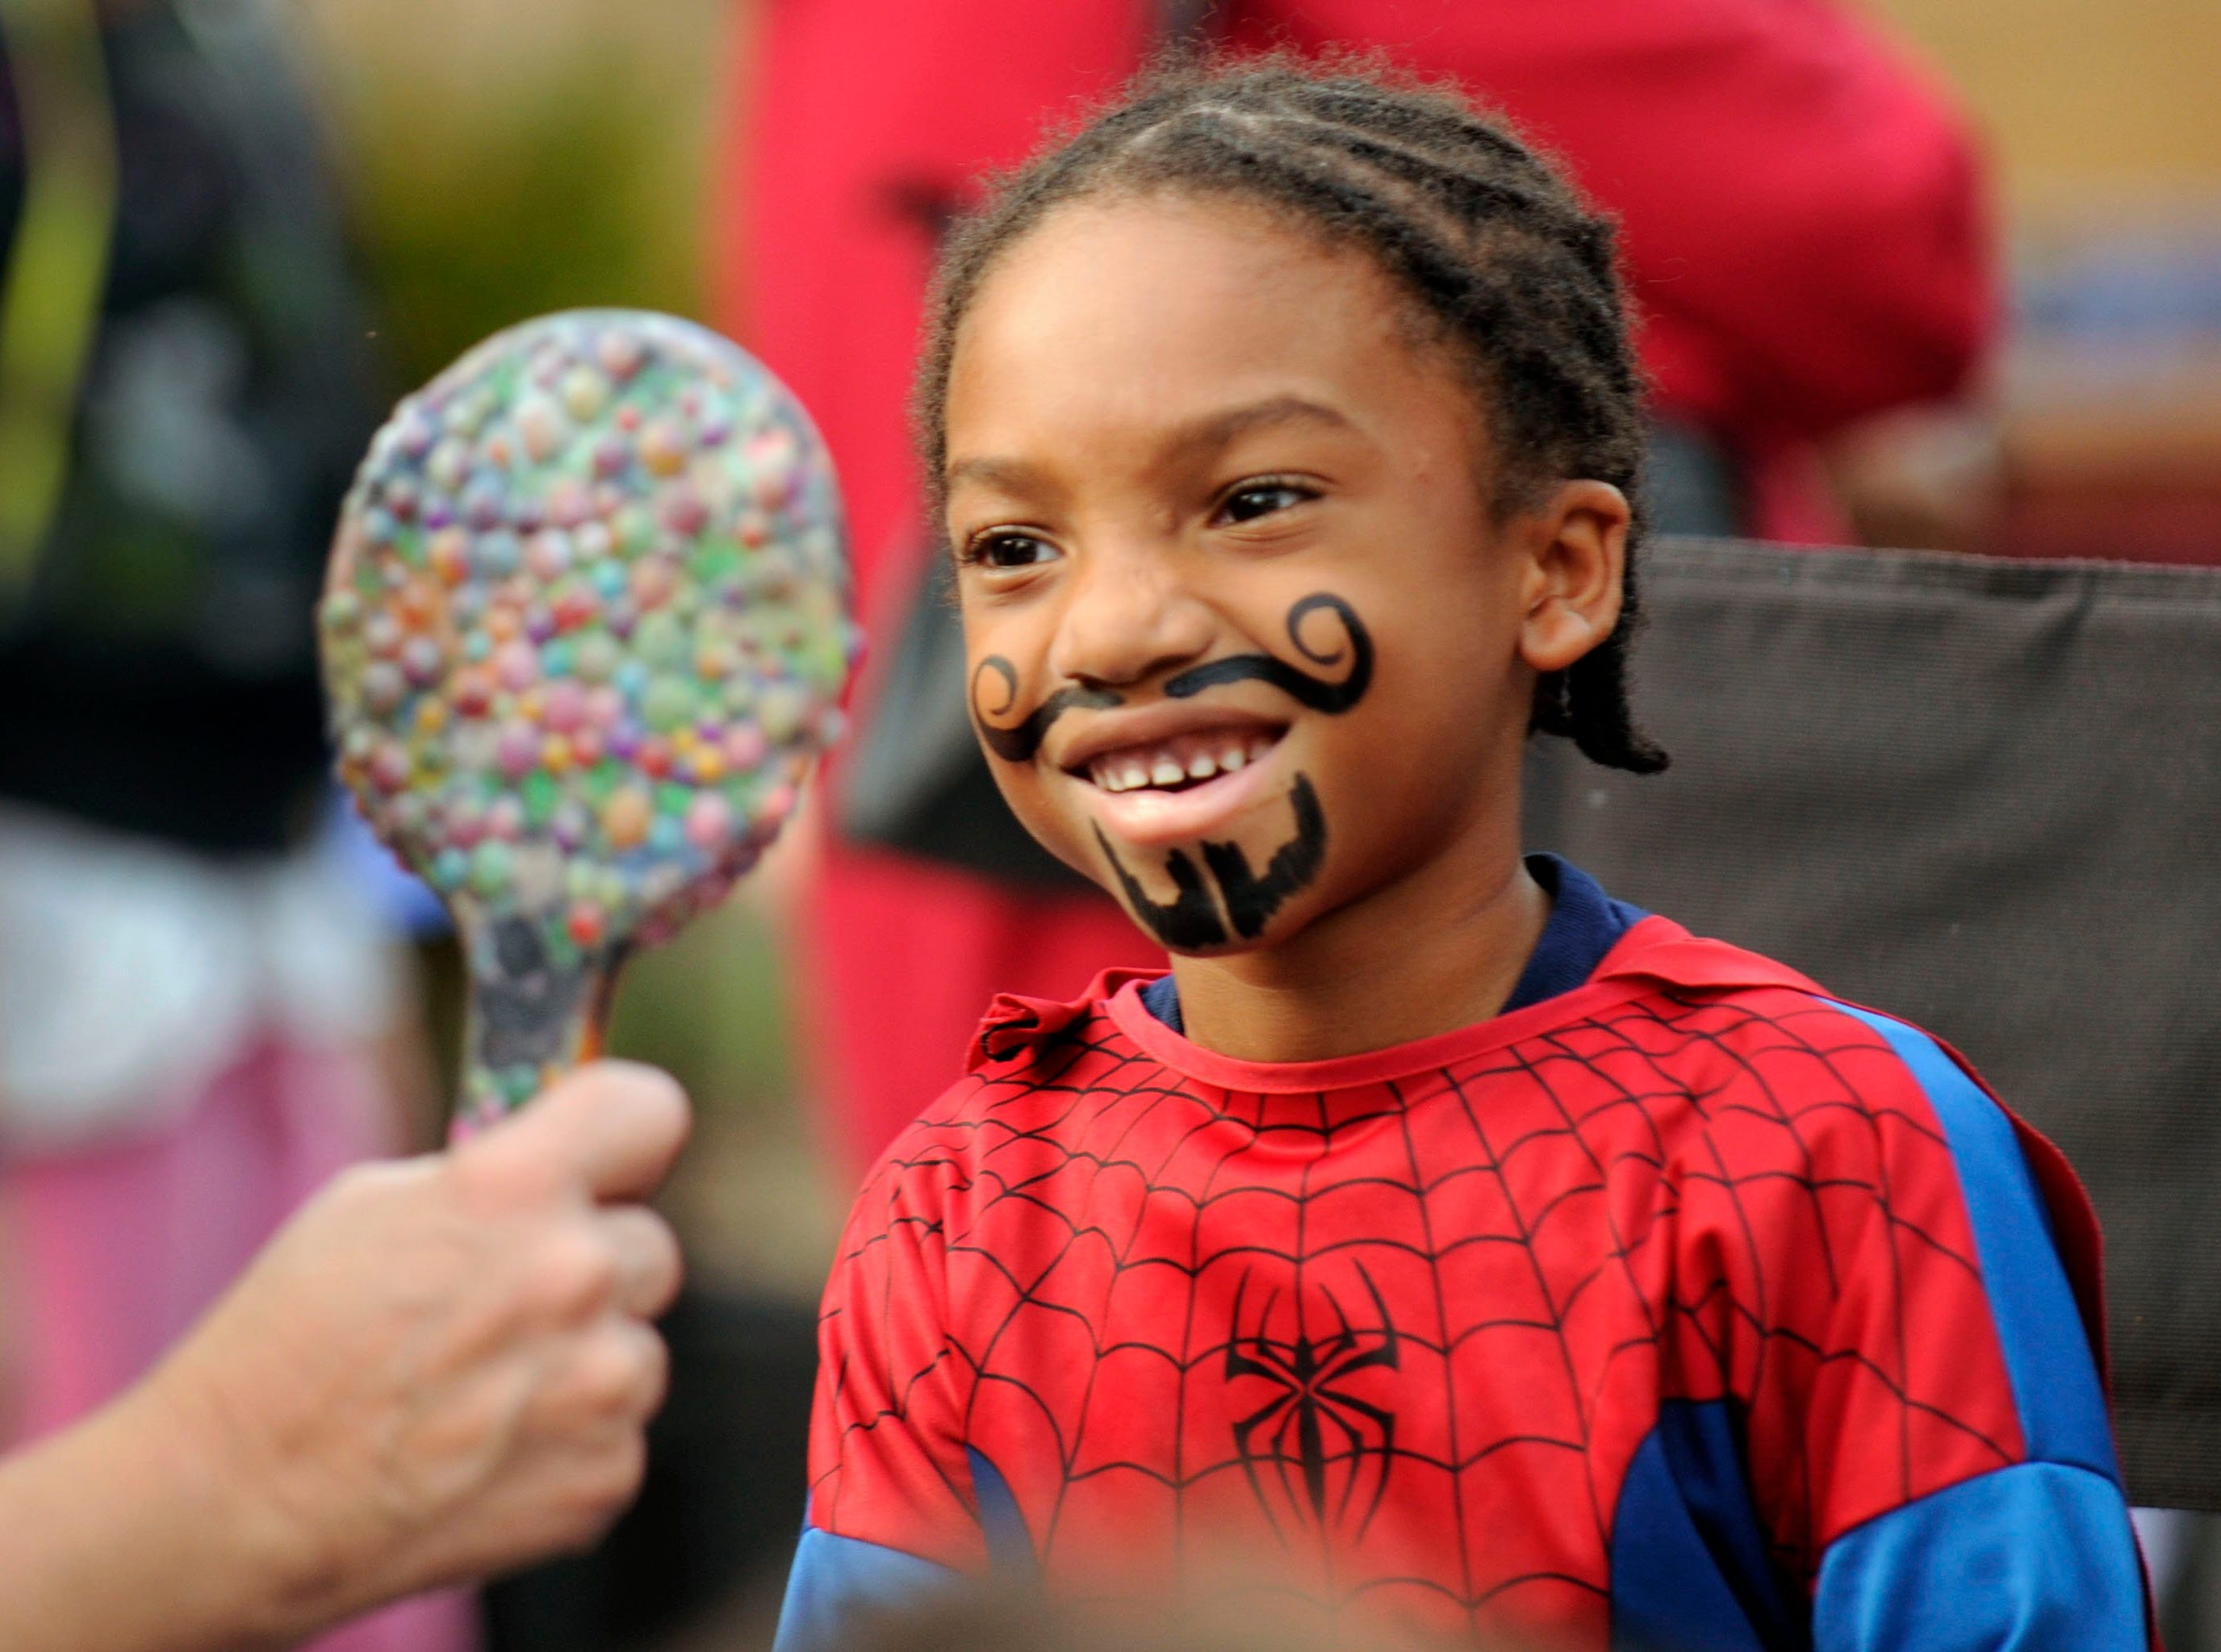 Pierre Rogers, 6, grimaces at his own reflection after getting a face painted mustache during Halloween activities at the Boys and Girls Club Vestal in Knoxville on Wednesday, Oct. 30, 2013. Pierre attended the event with his mother Brittany Rucker.